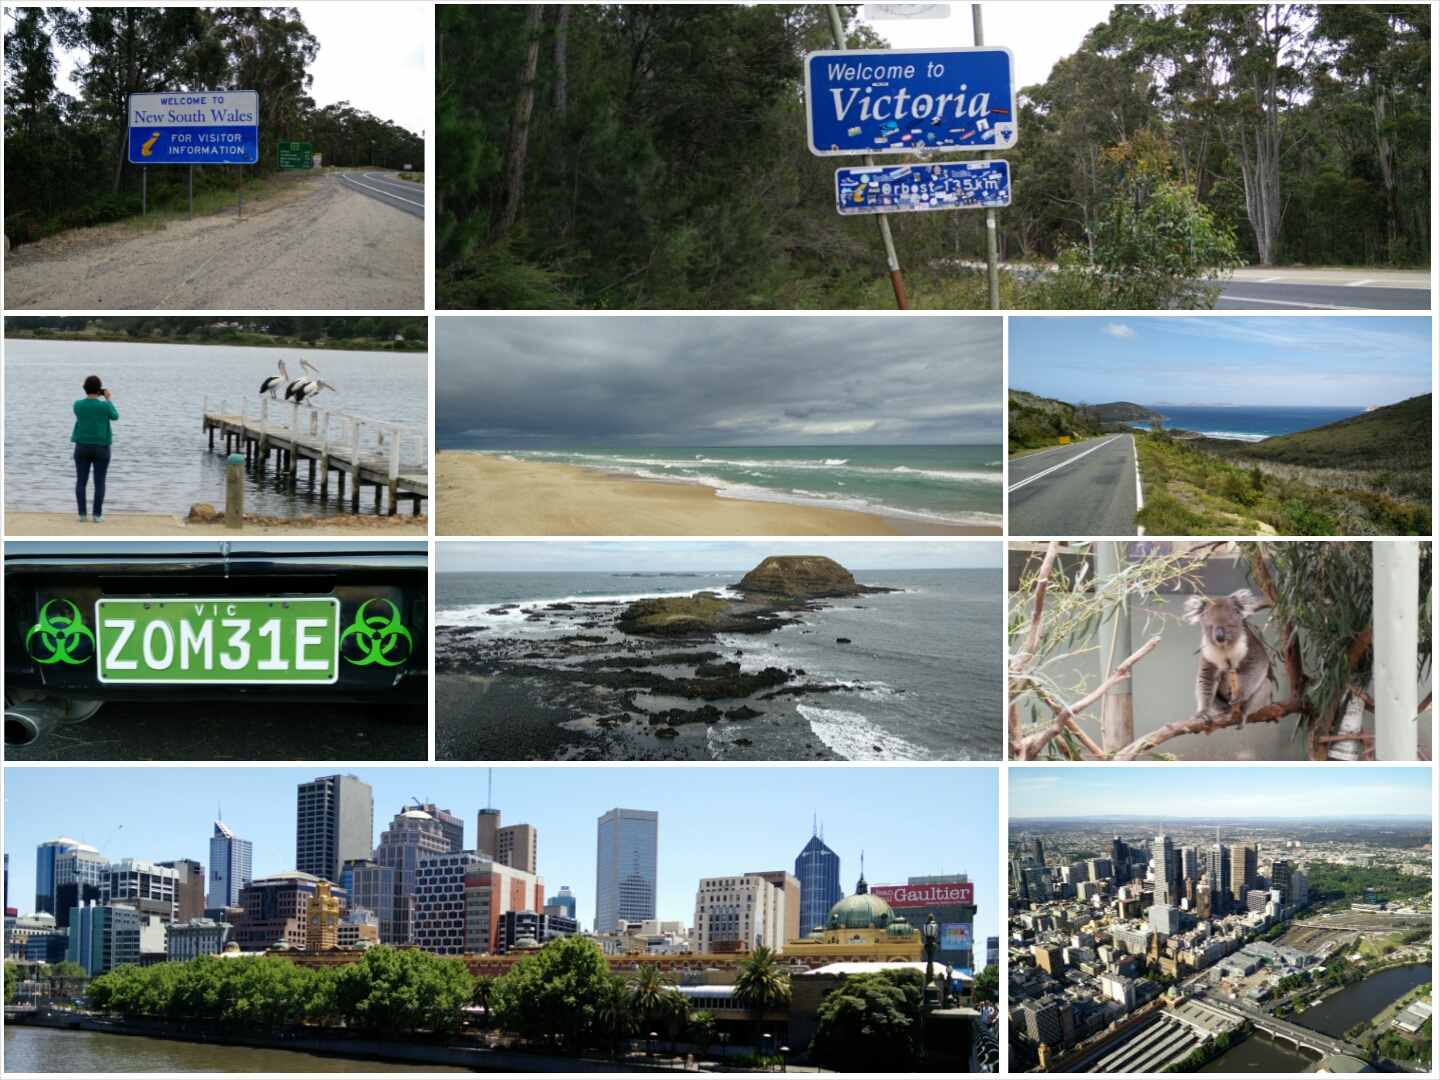 Collage: NSW VIC Border, Melbourne...